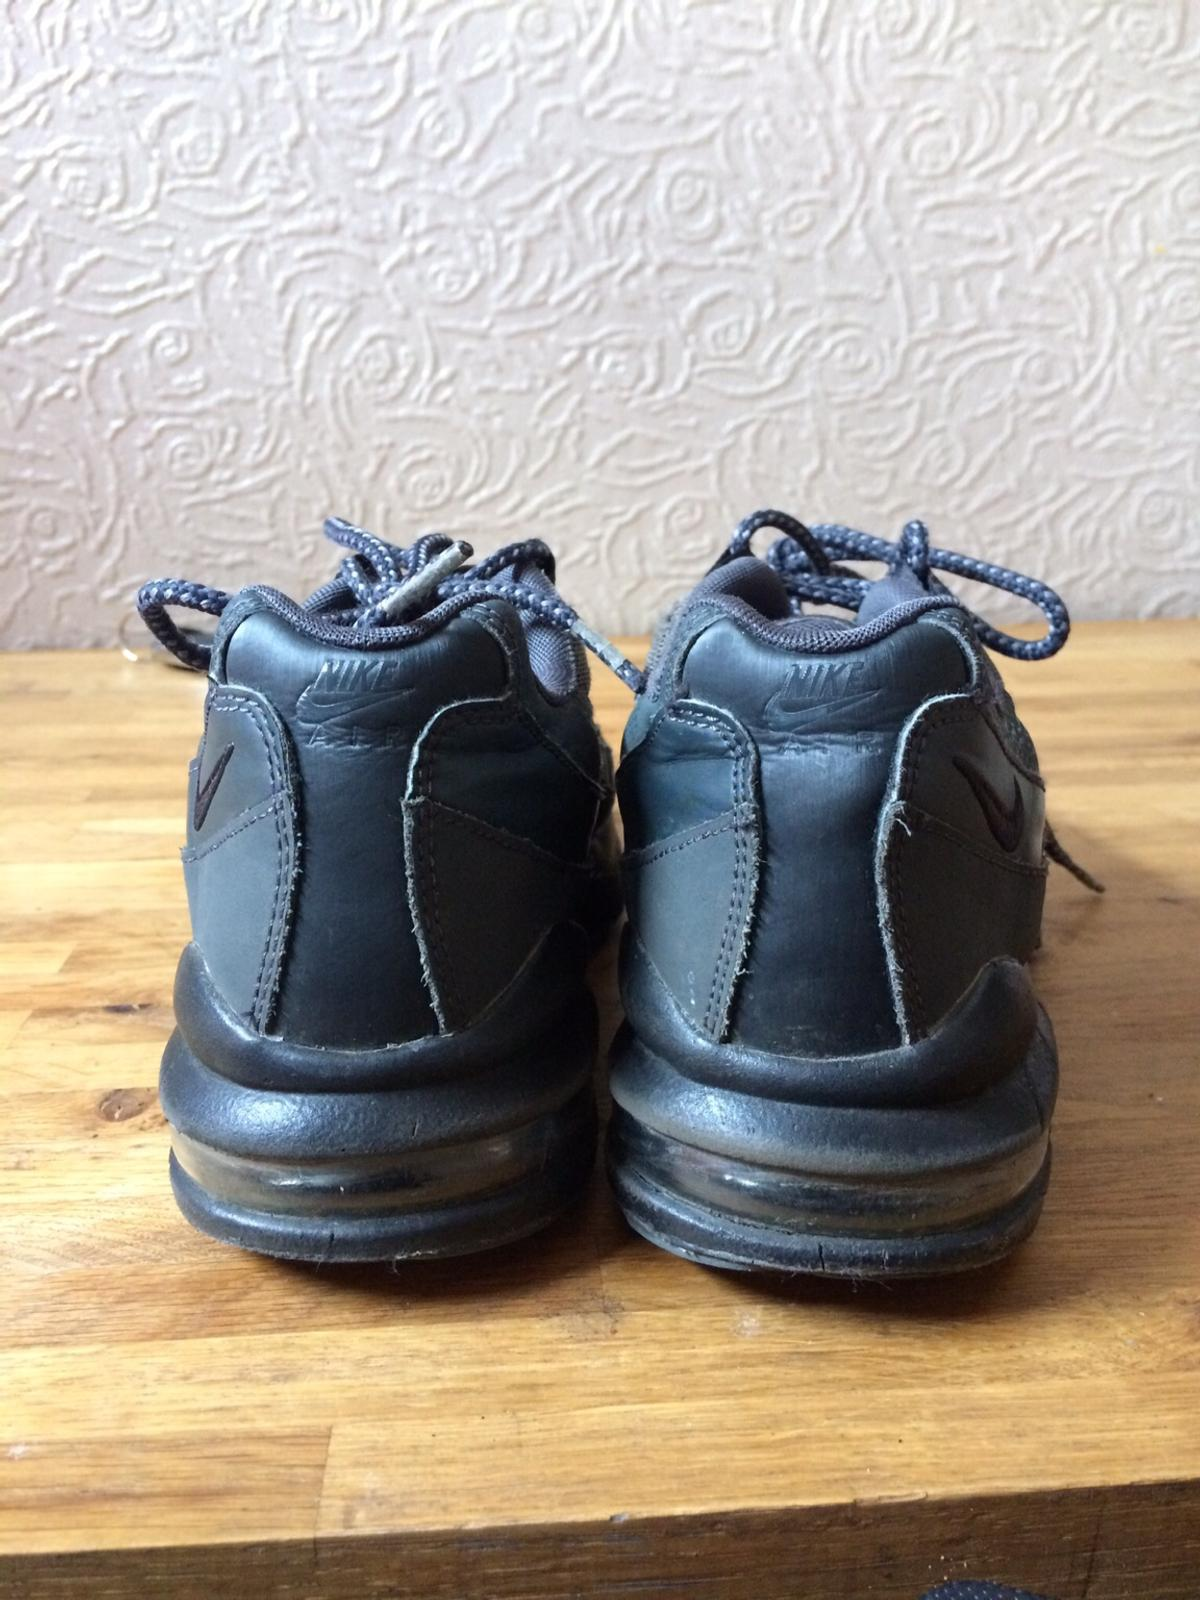 BlackGrey Nike Air Max 95 Size 5.5 in M28 Salford for